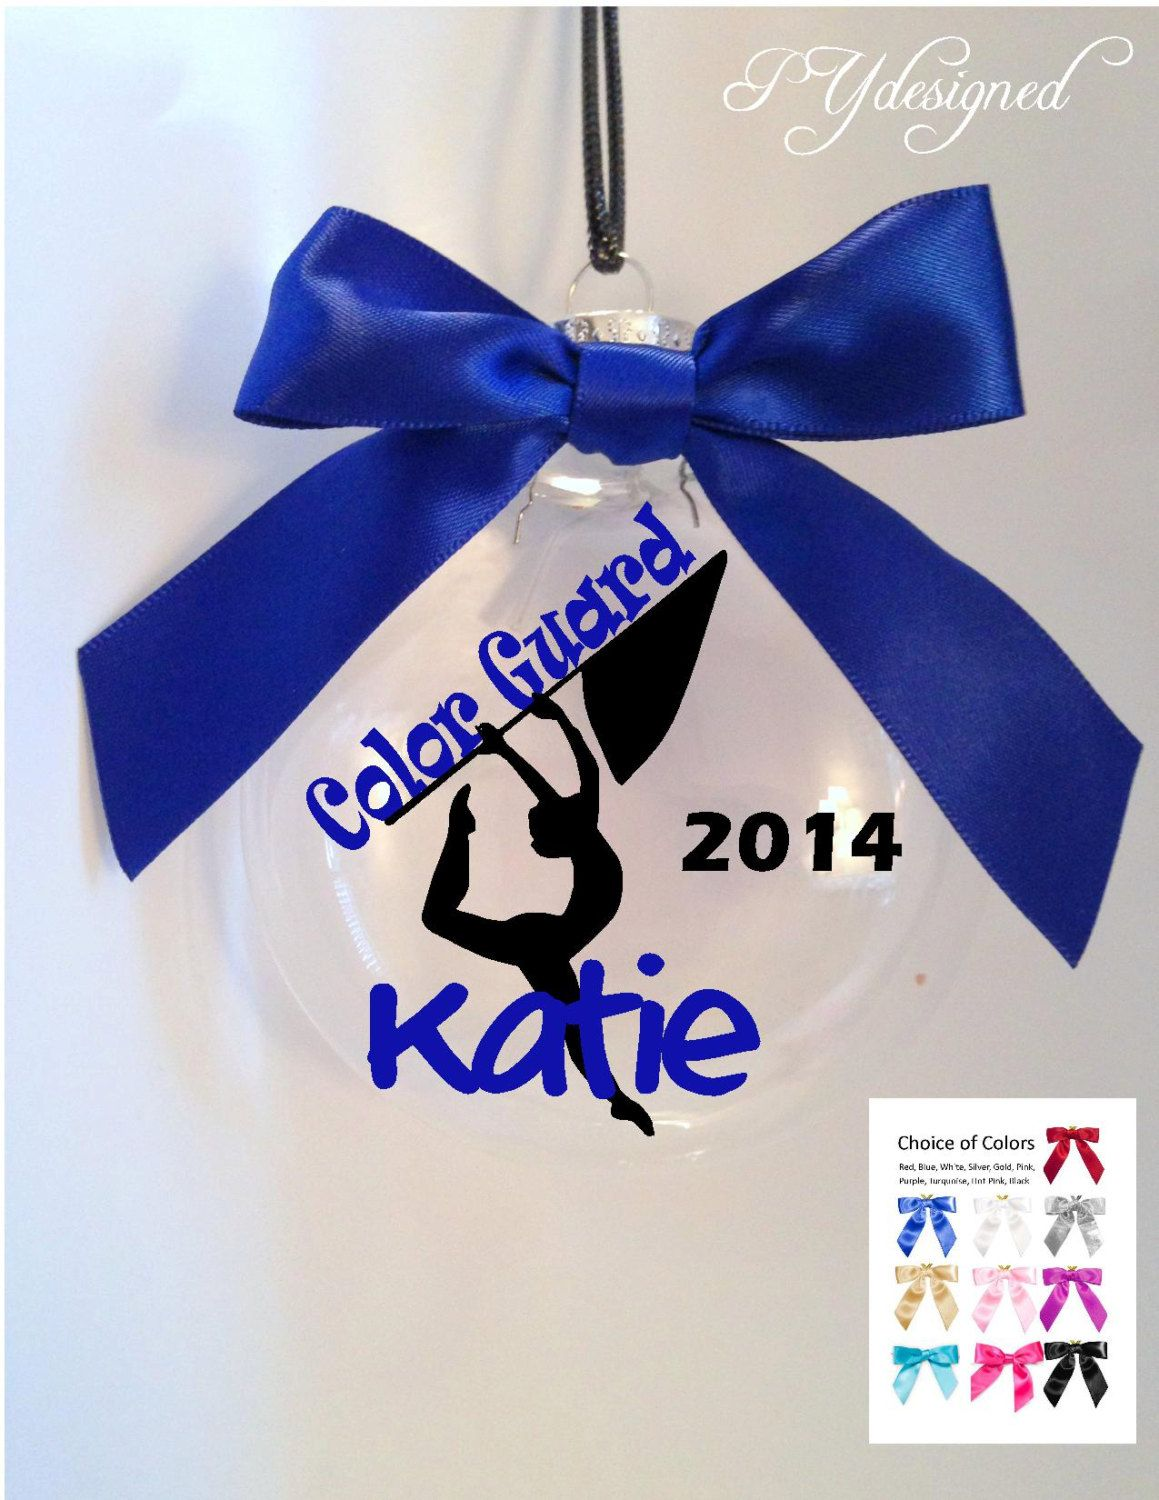 Color Guard Christmas Ornament Includes Gift Box By Pydesigned On Etsy Color Guard Color Guard Uniforms Color Guard Shirts